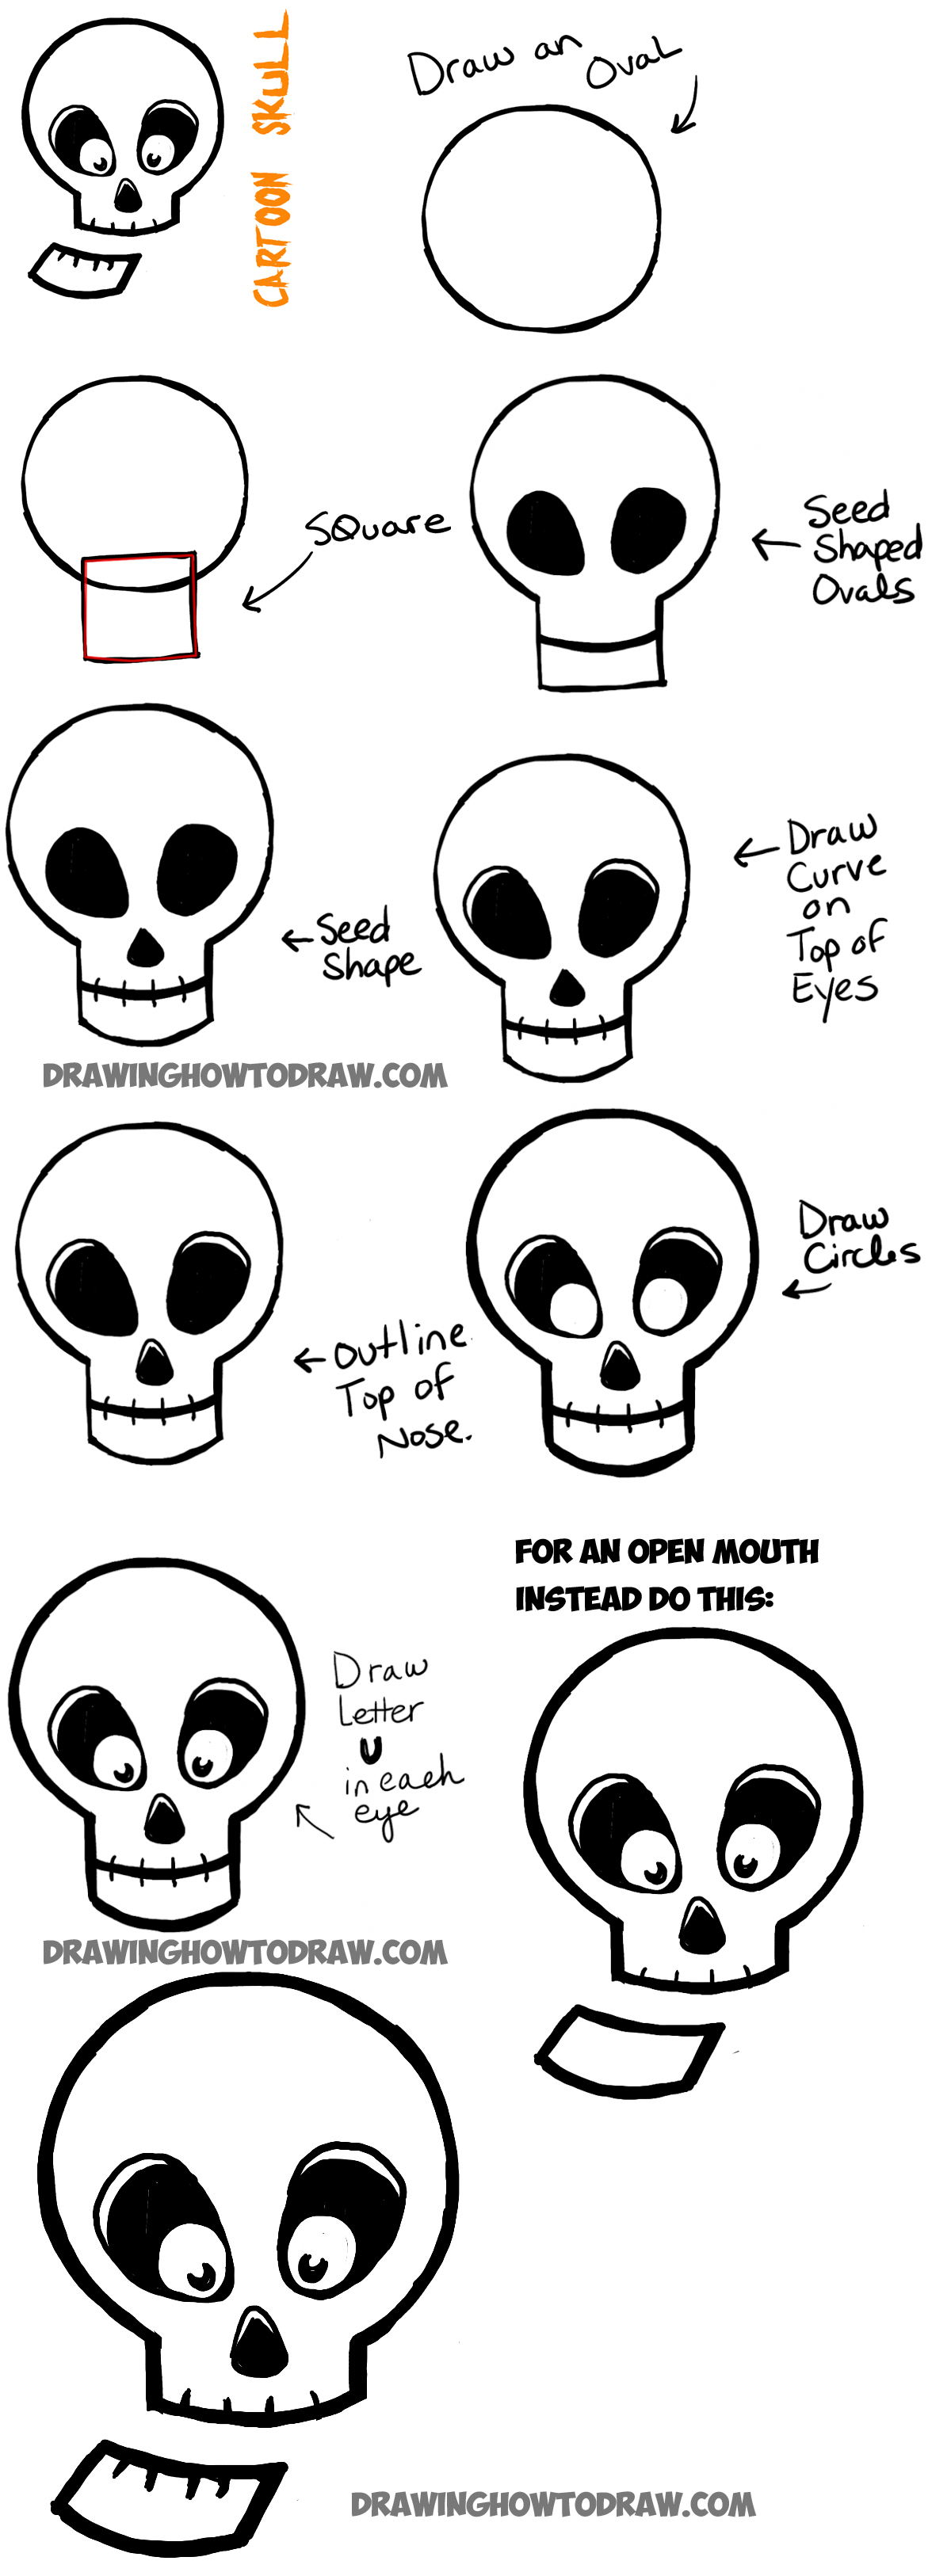 Simple steps on how to draw a skull